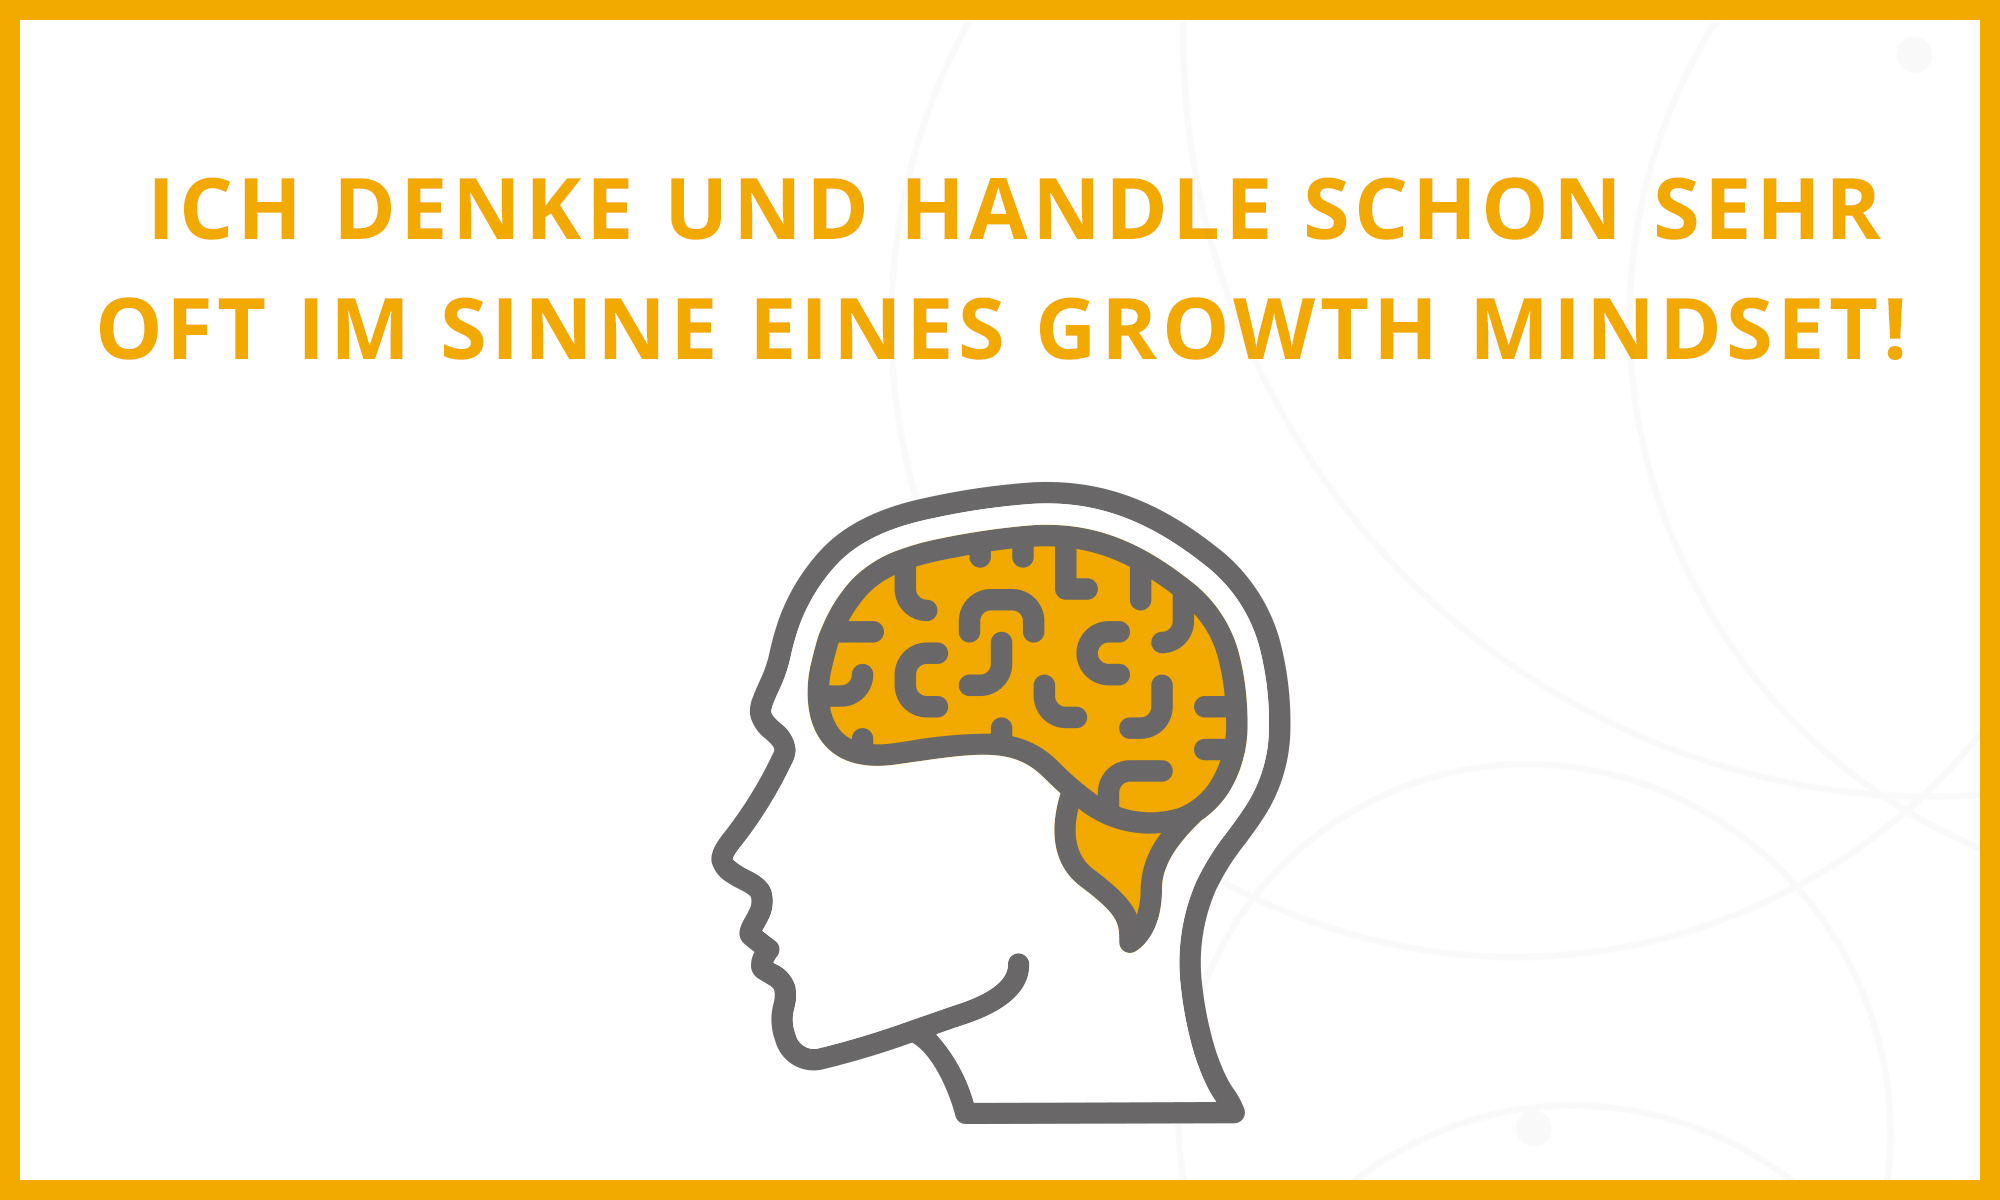 joblocal karriere Game Growth Mindset Lösung 3